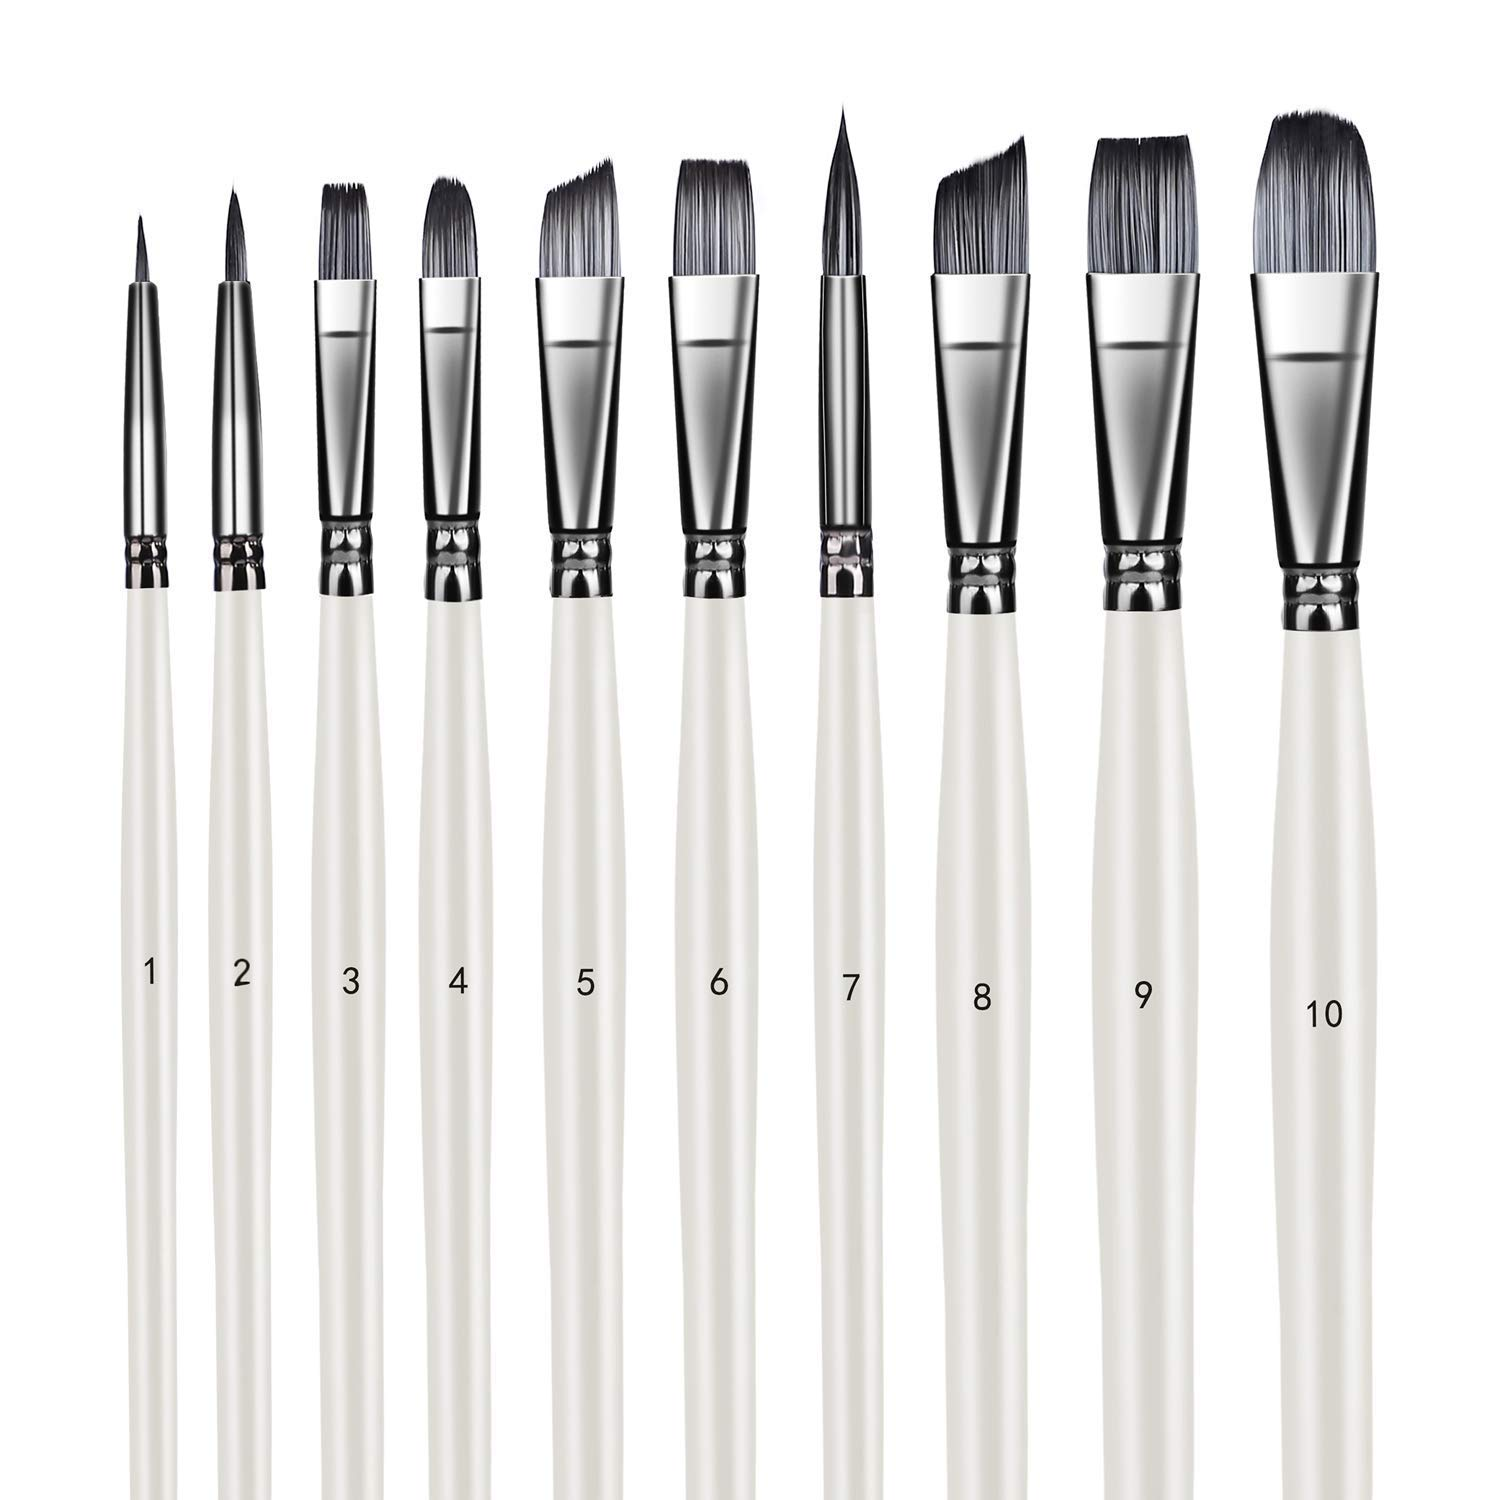 Artist Brush Set Xpassion Handmade Professional Acrylic Paint Brushes 10Pieces for Acrylic Watercolor Oil Painting, Pearl White